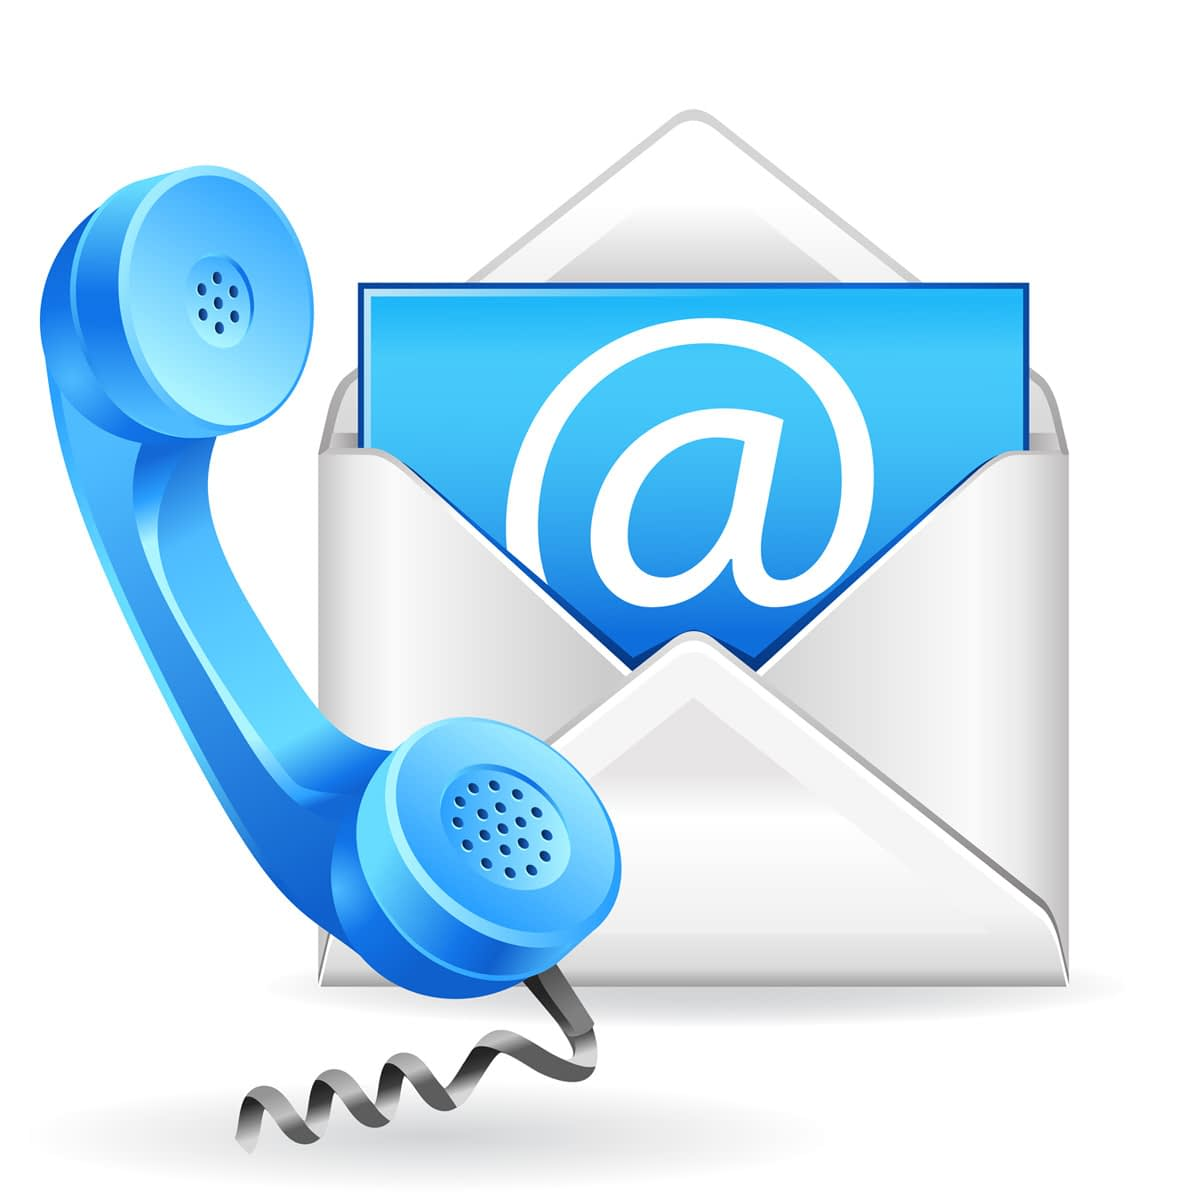 contact us phone and mail icons